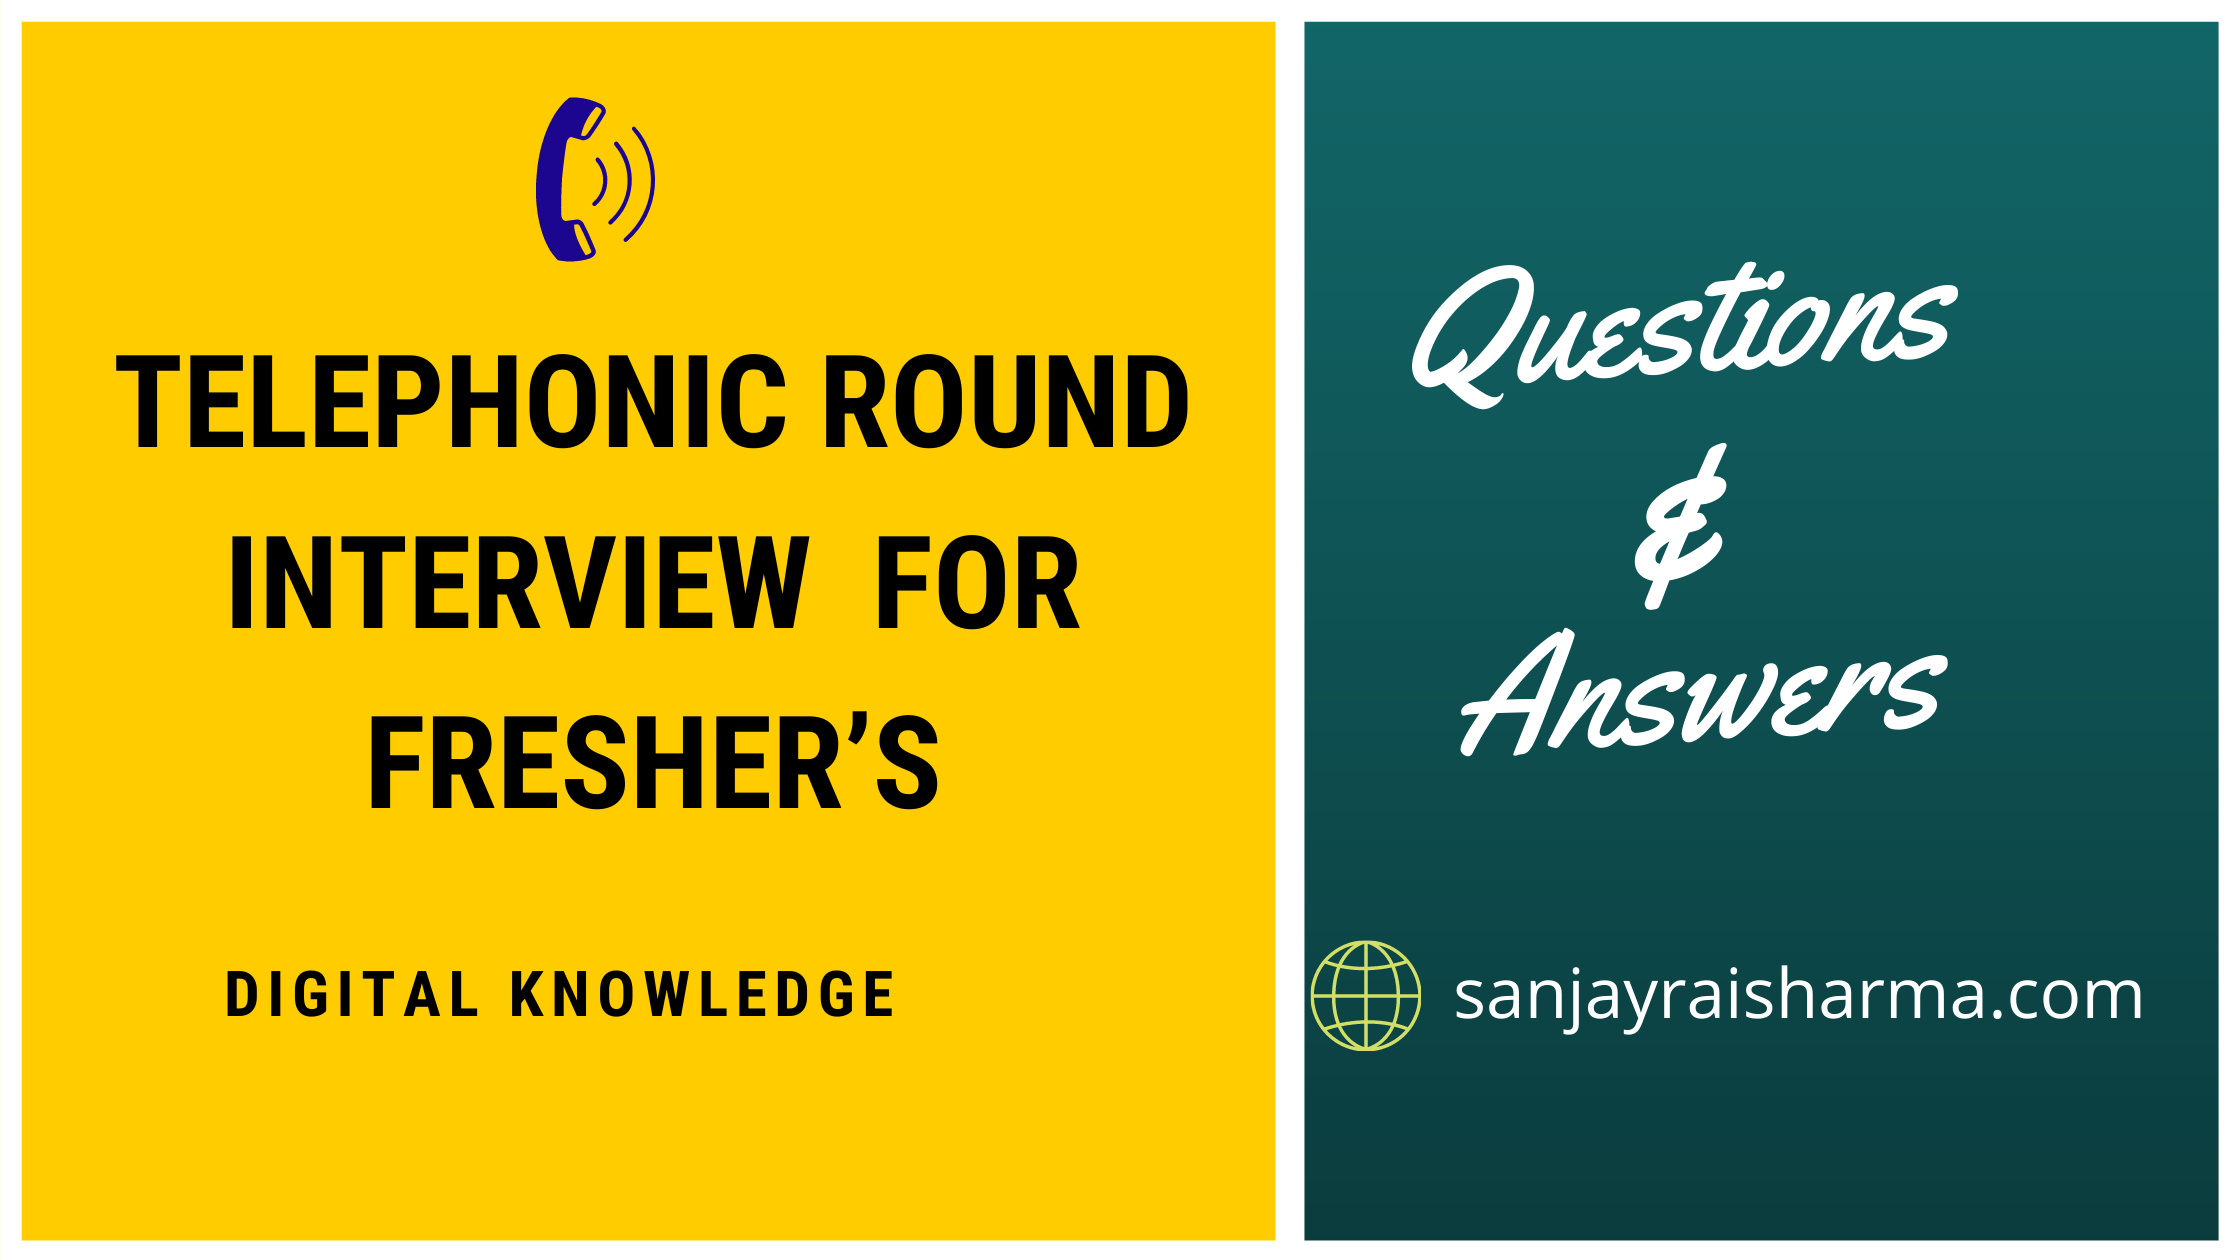 Telephonic round interview questions and answers for fresher's